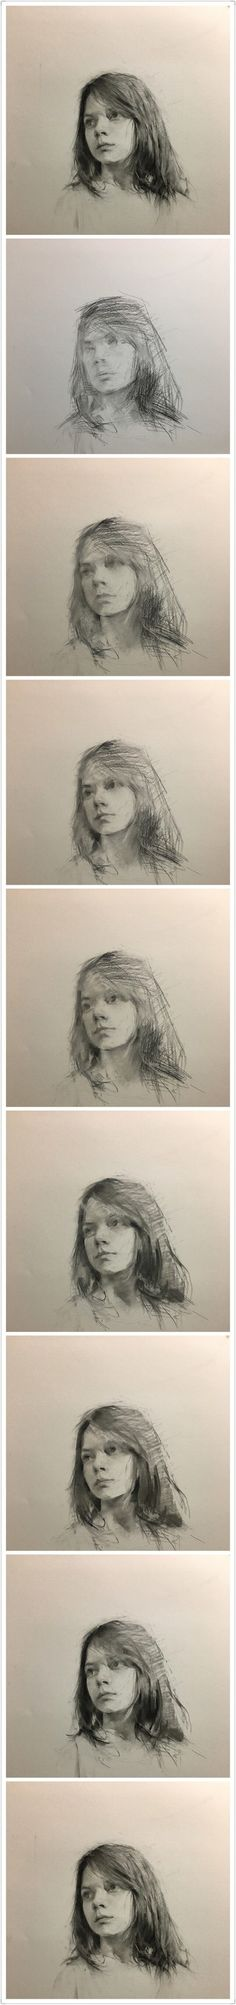 Drawing Pencil Portraits - 堆糖-美好生活研究所 Discover The Secrets Of Drawing Realistic Pencil Portraits Portrait Sketches, Pencil Portrait, Portrait Art, Art Sketches, Life Drawing, Figure Drawing, Painting & Drawing, Shetland, Beautiful Drawings